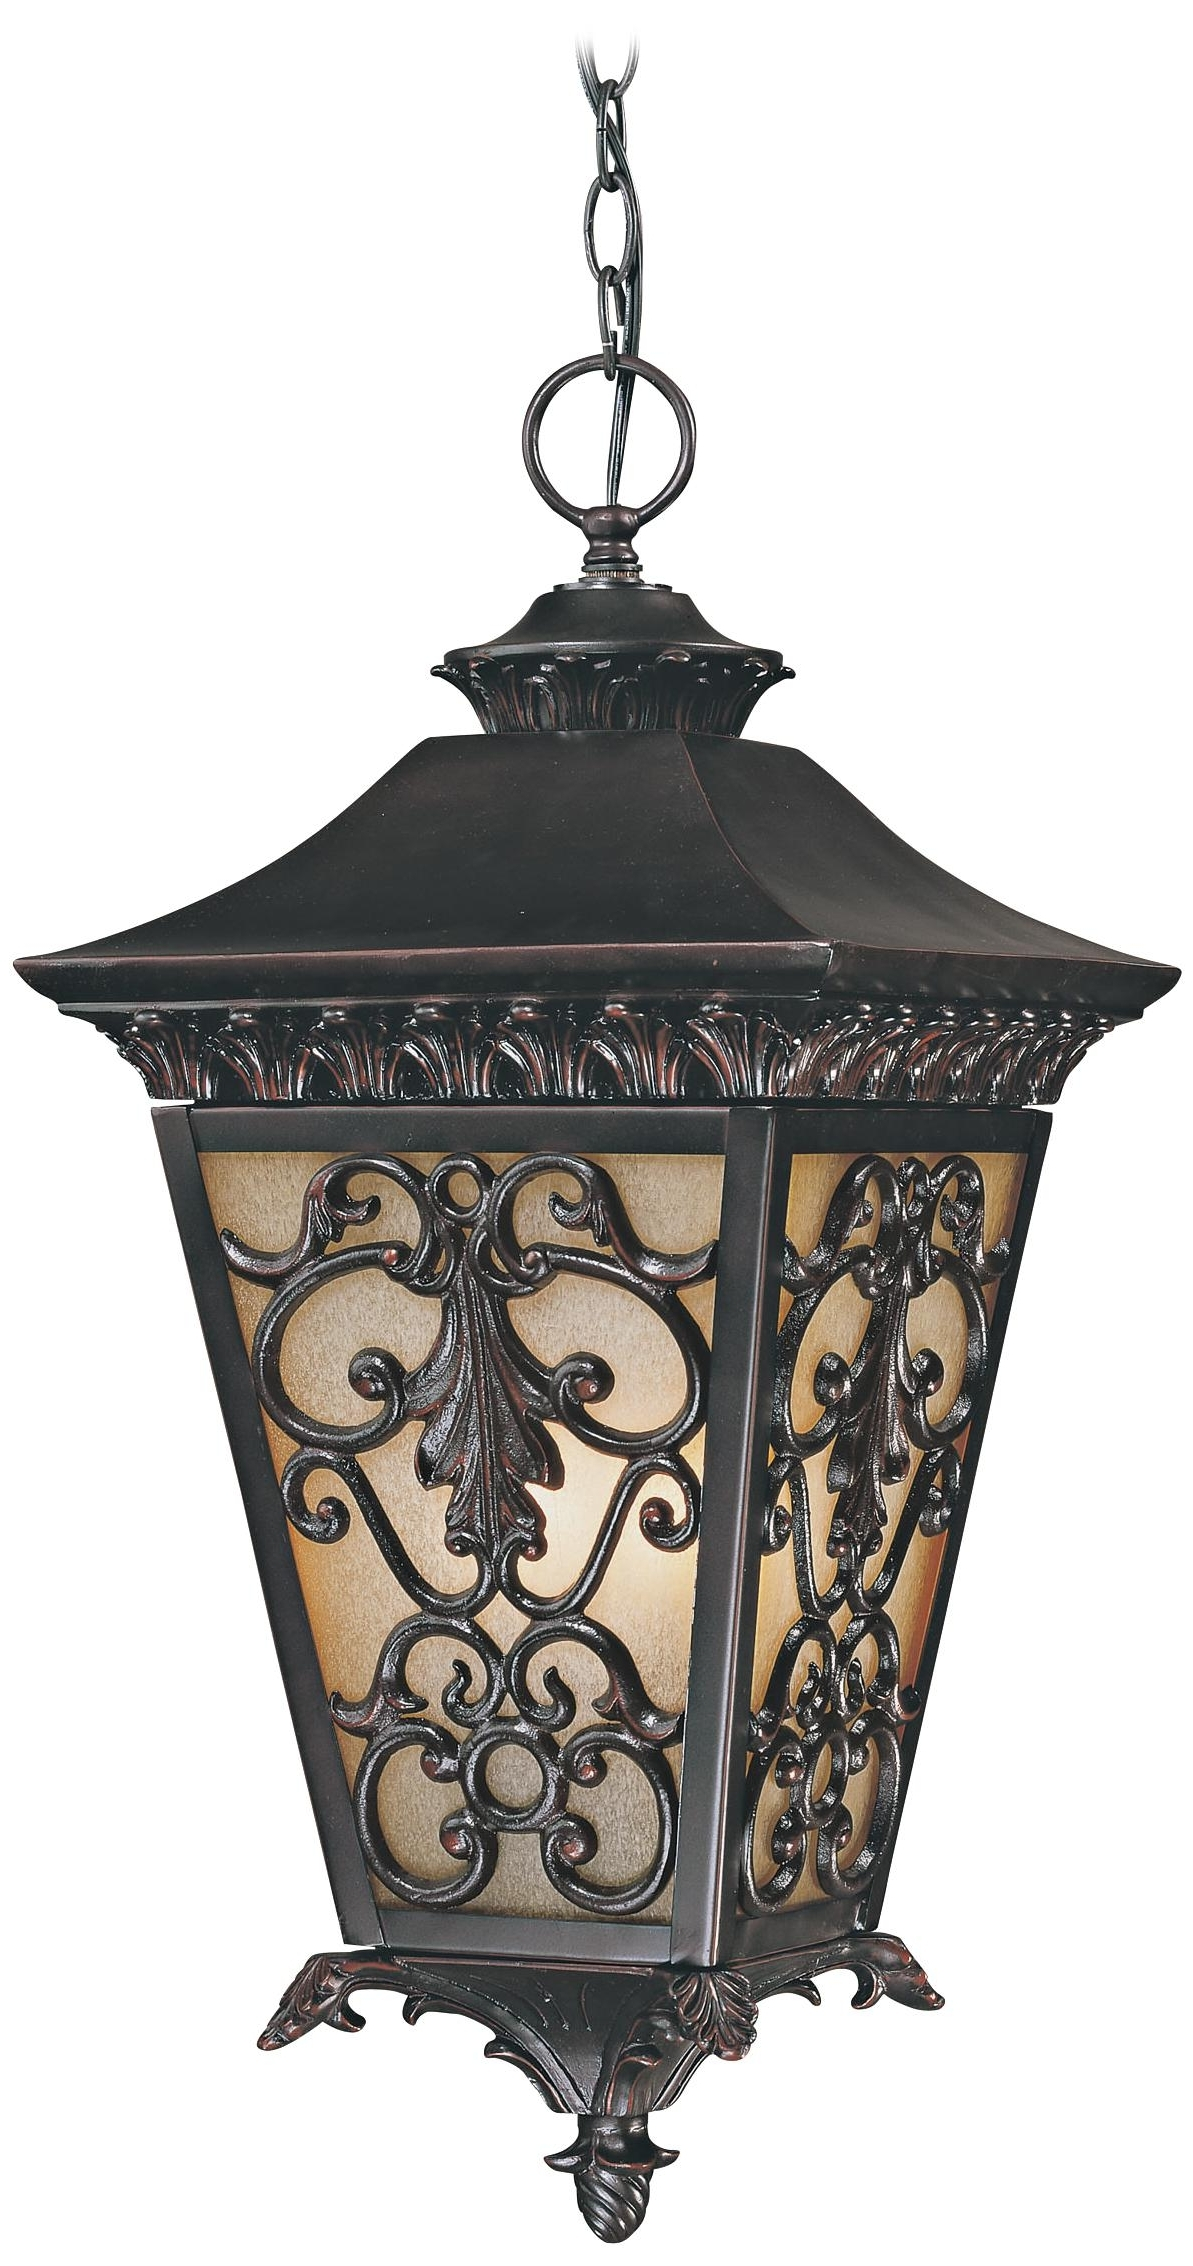 Tuscan Old Throughout Latest Outdoor Hanging Wall Lanterns (View 3 of 20)